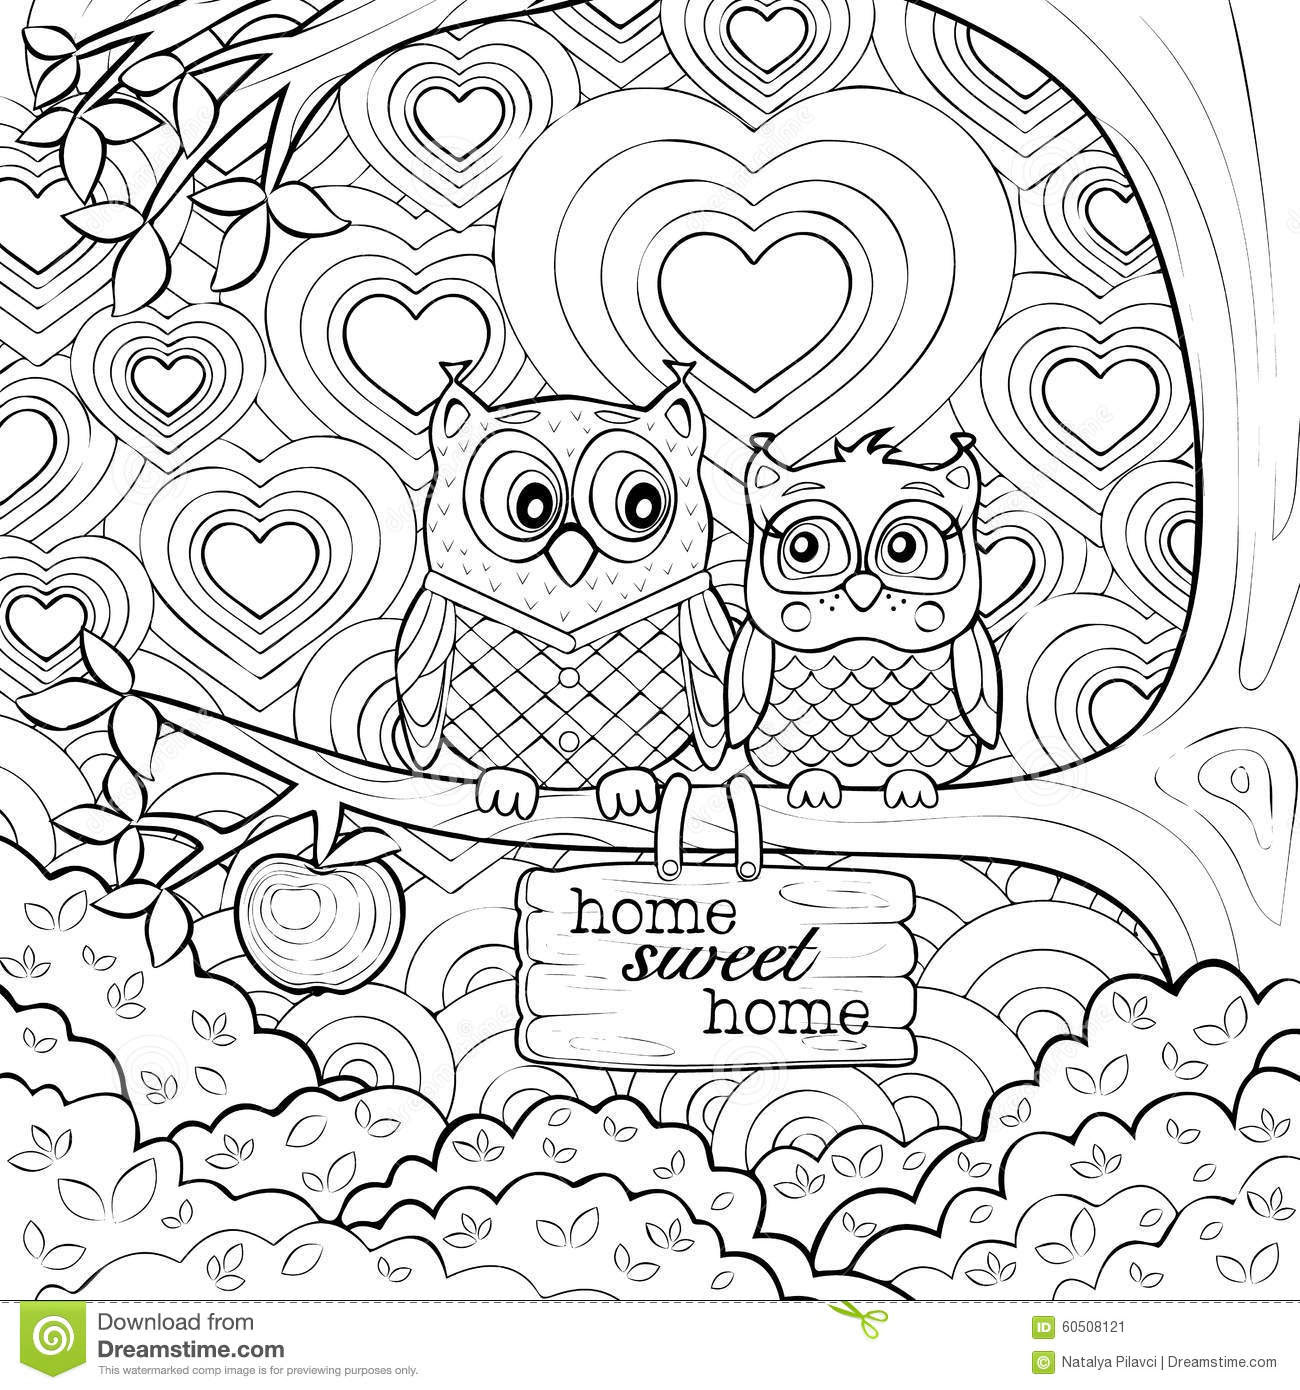 95 EASY COLORING BOOK FOR ADULTS THERAPY PRINTABLE PDF ...